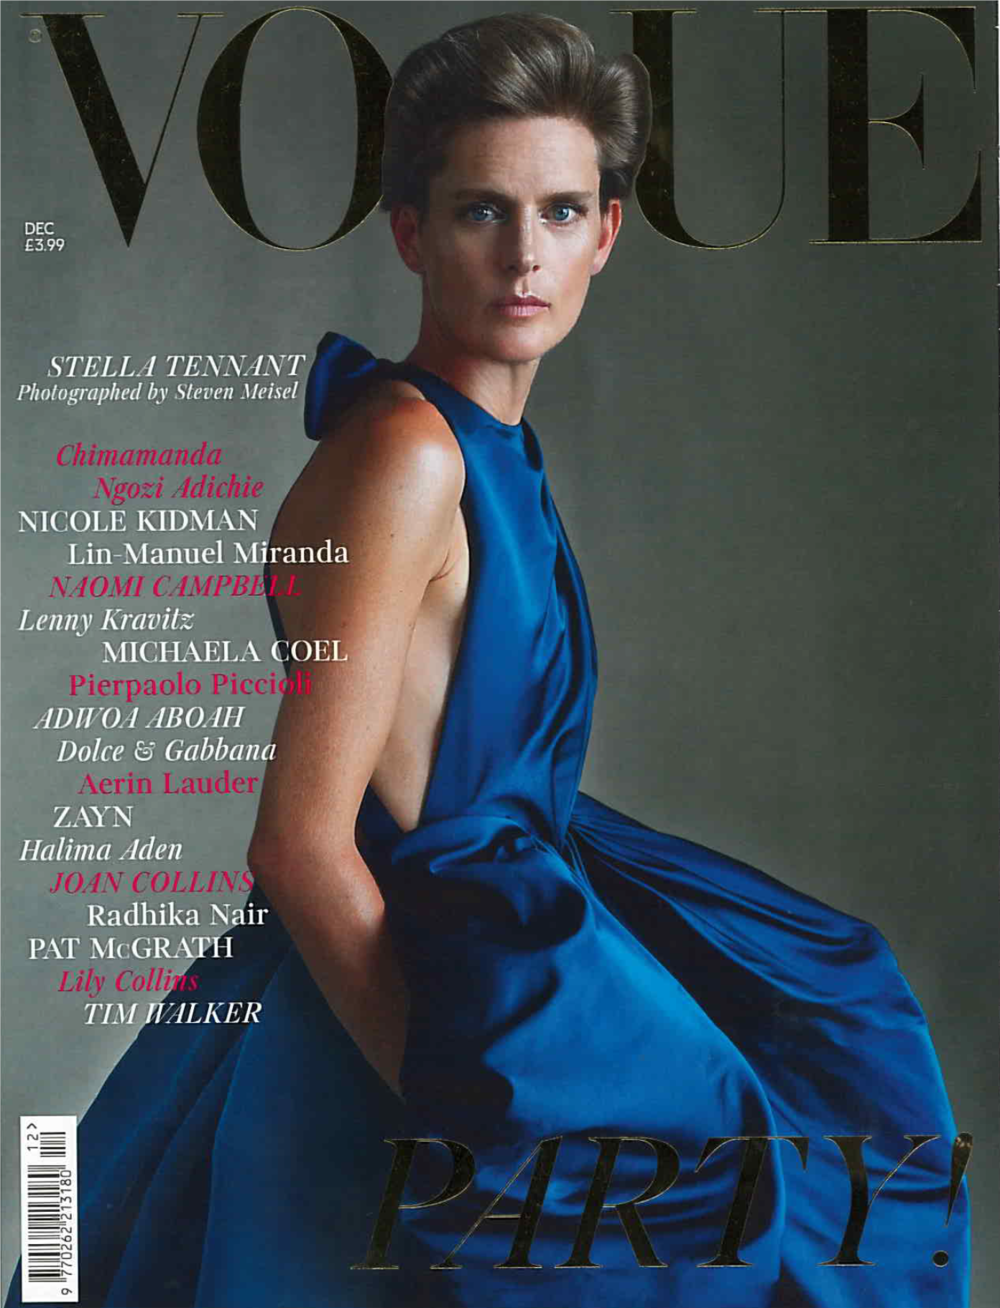 Britist Vogue Dec. 2018 Stella Tennant Cover